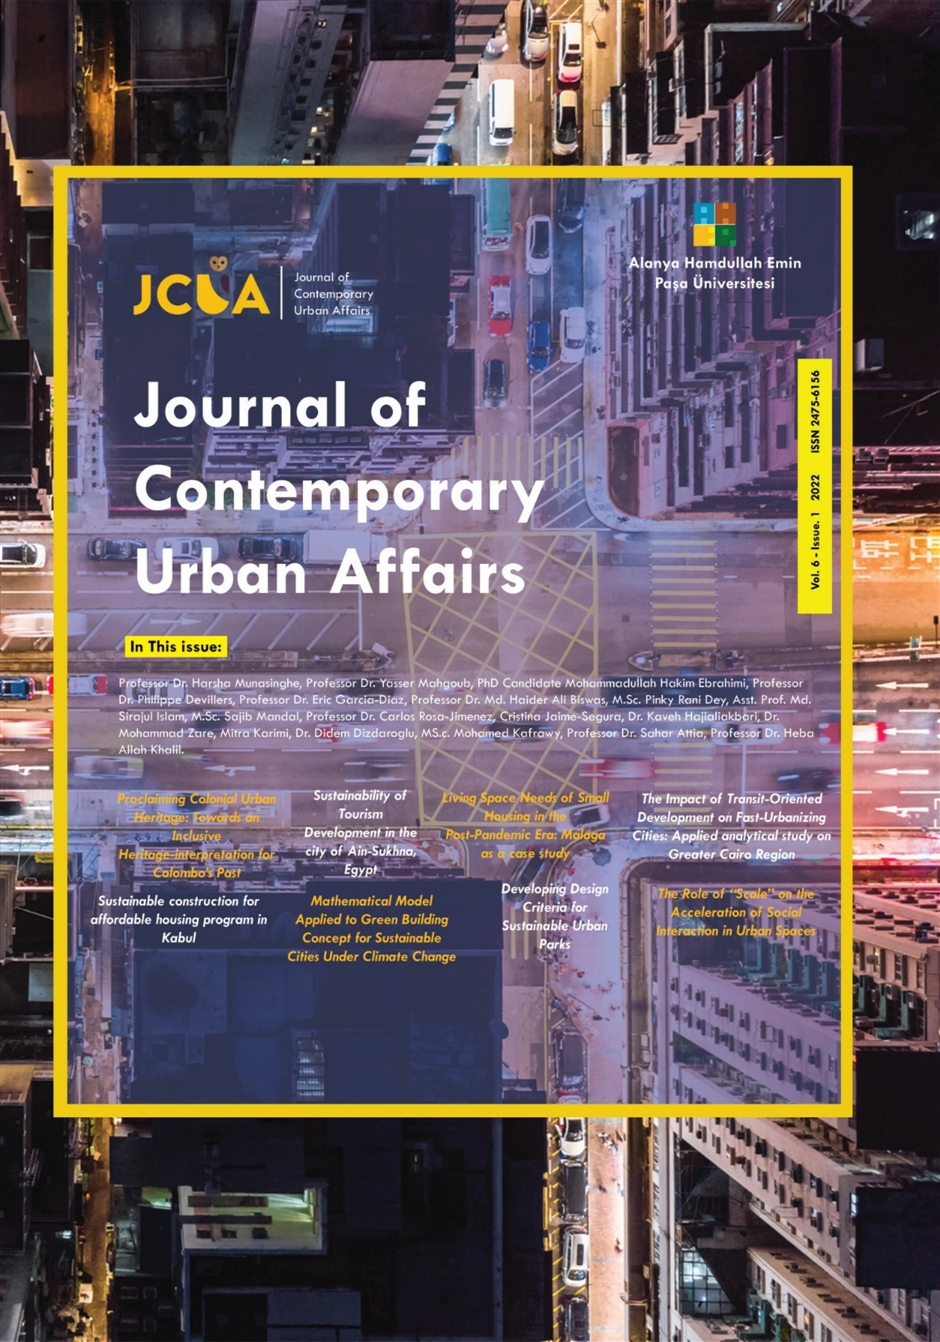 Urban planning, Spatial planning, Urban Design, Urban, Sustainability, Globalization, Pandemic and Urban Public Spaces, Conflict and Divided Territories, Emerging Cities, Morphology, Infra Habitation, Slums, Affordable Houses, Gated Communities, Revitalization, Regeneration and Urban renewal, Quality of Life, Rapid Urbanization, Urban Sprawl, Journal of Contemporary urban affairs.